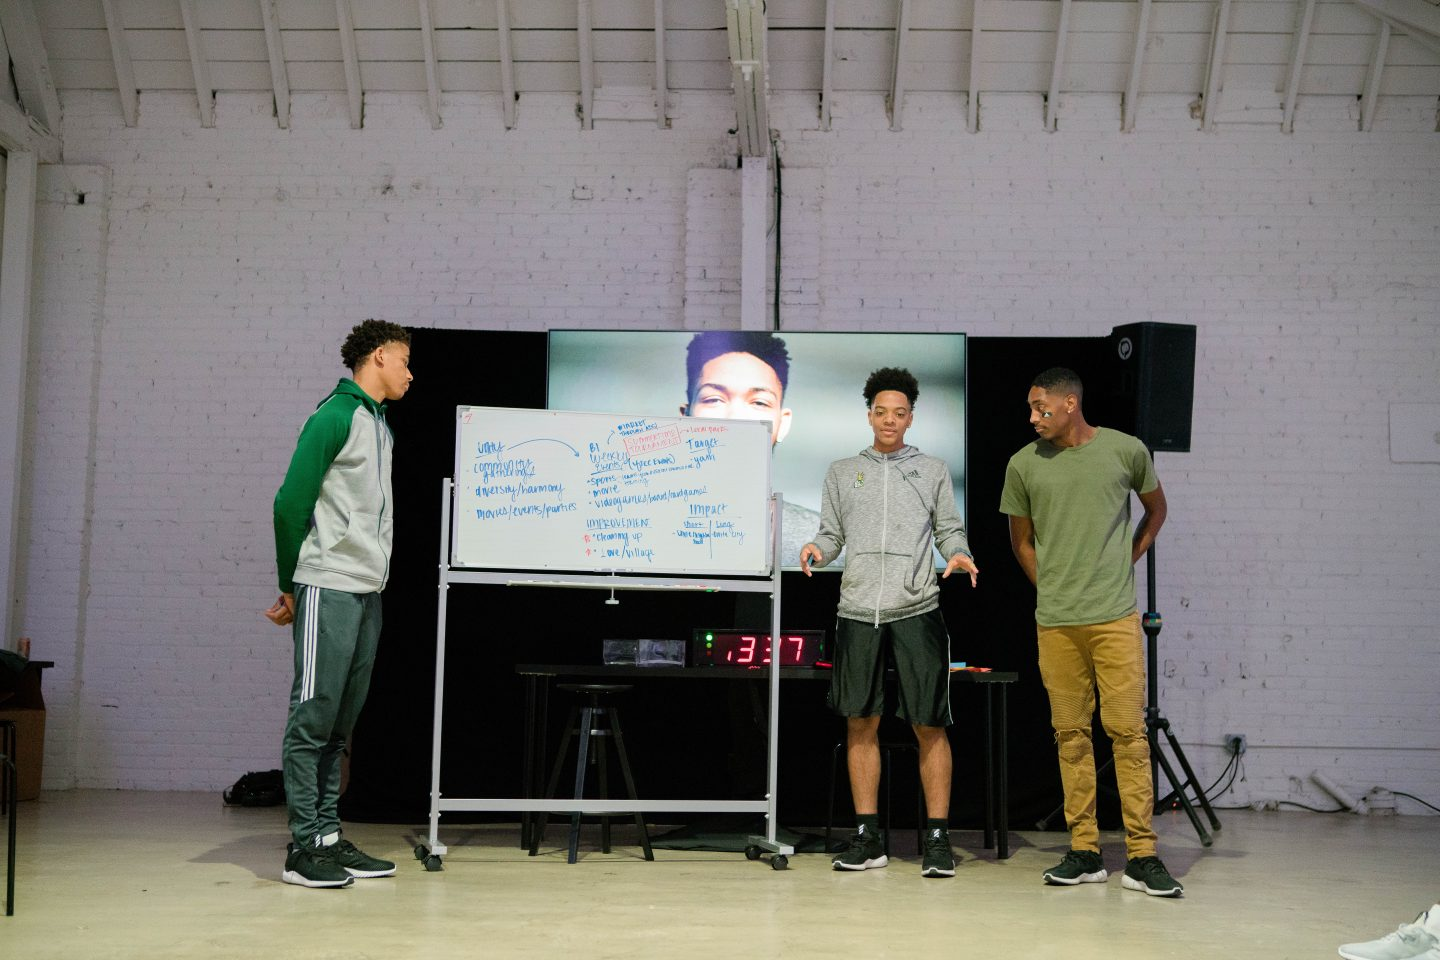 Three young boys stand beside a whiteboard presenting their ideas. teamwork, confidence, teaching, learning